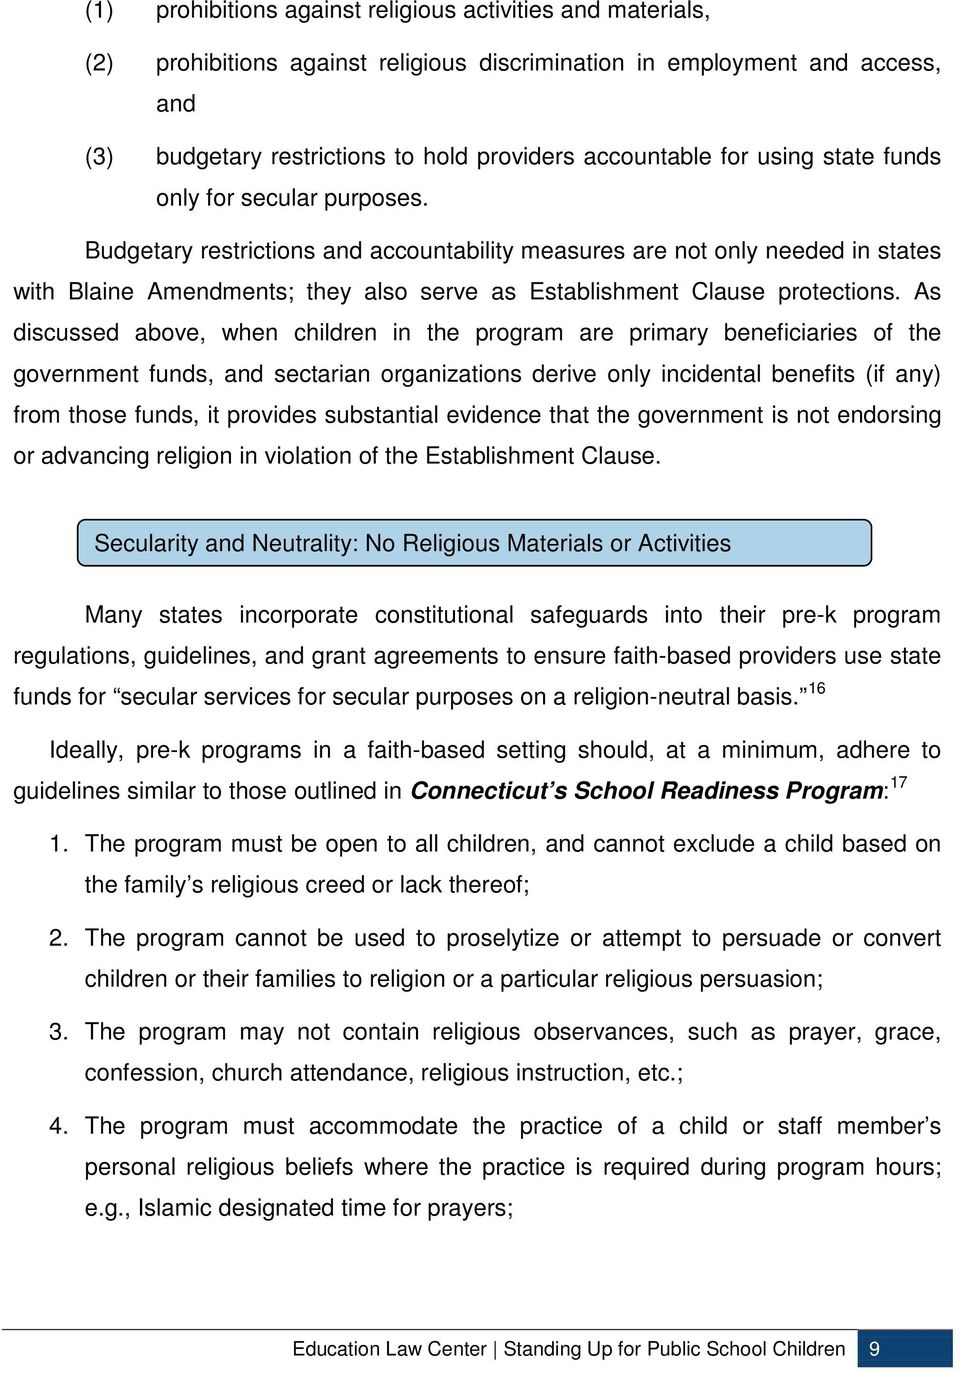 Budgetary restrictions and accountability measures are not only needed in states with Blaine Amendments; they also serve as Establishment Clause protections.